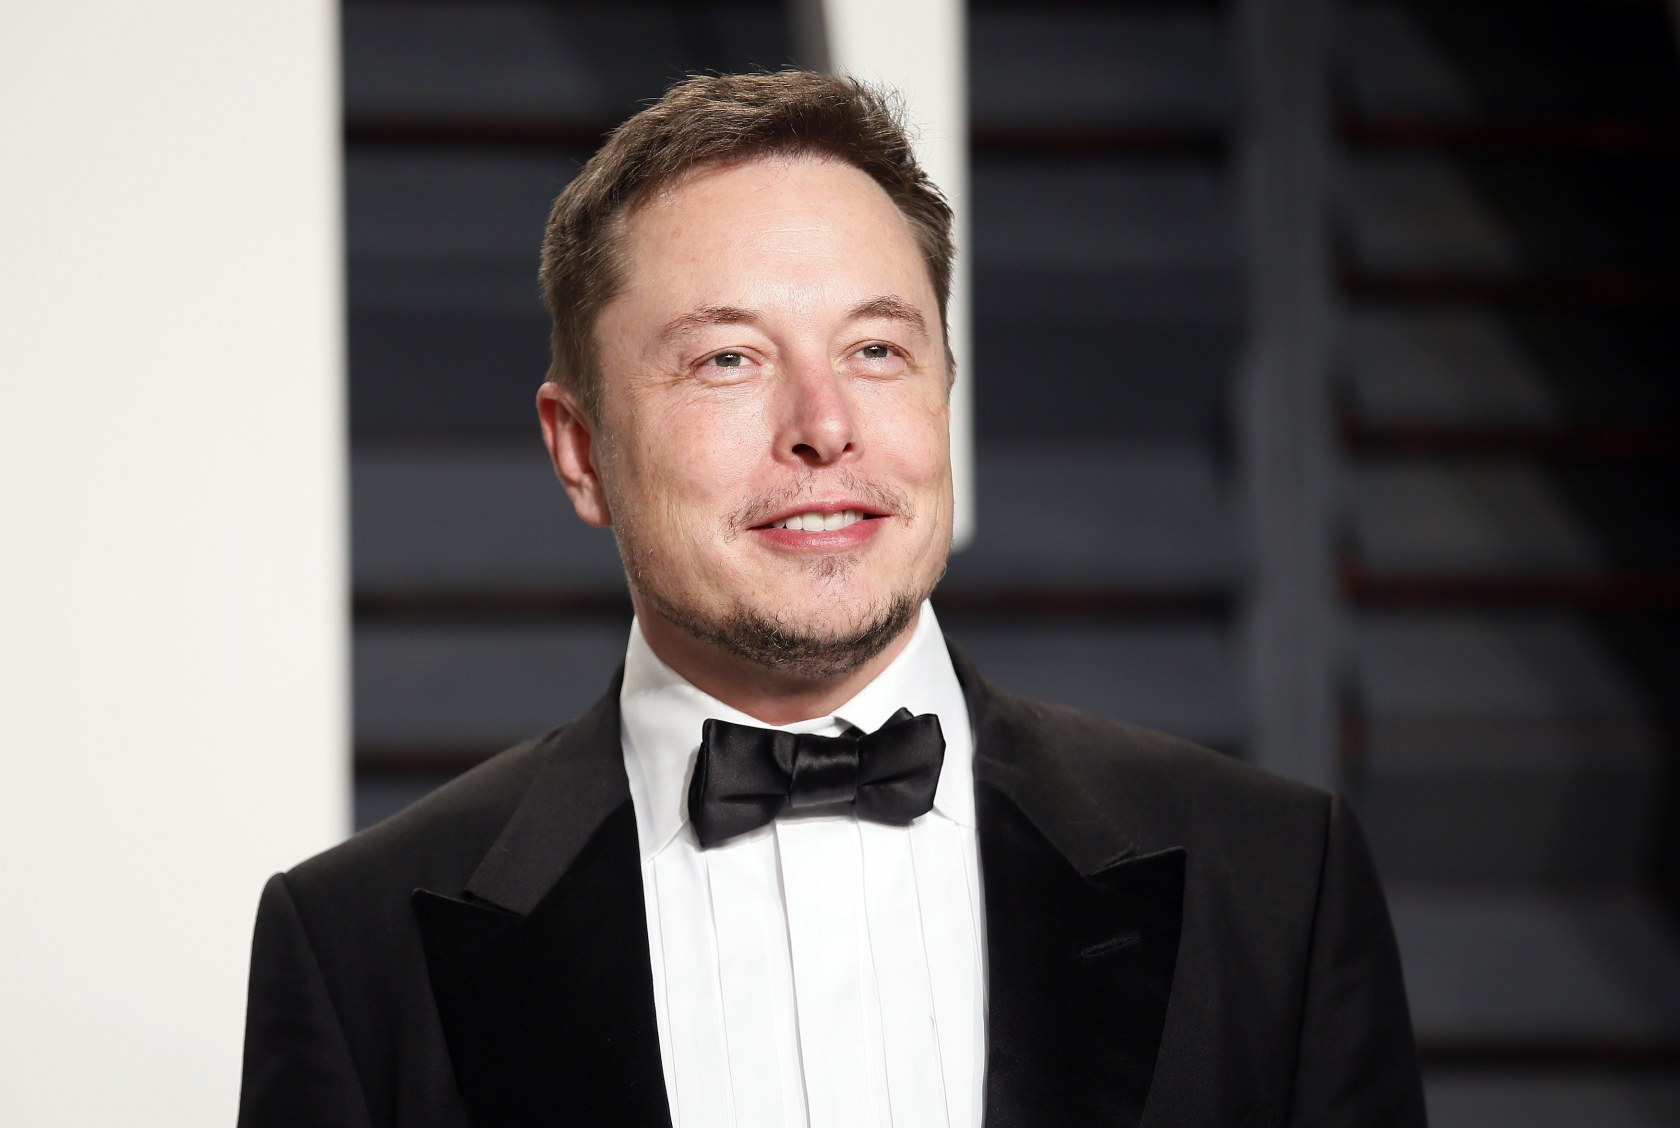 Elon Musk reportedly says Tesla has 10 months to break even, outlines 'hardcore' cost-cutting changes